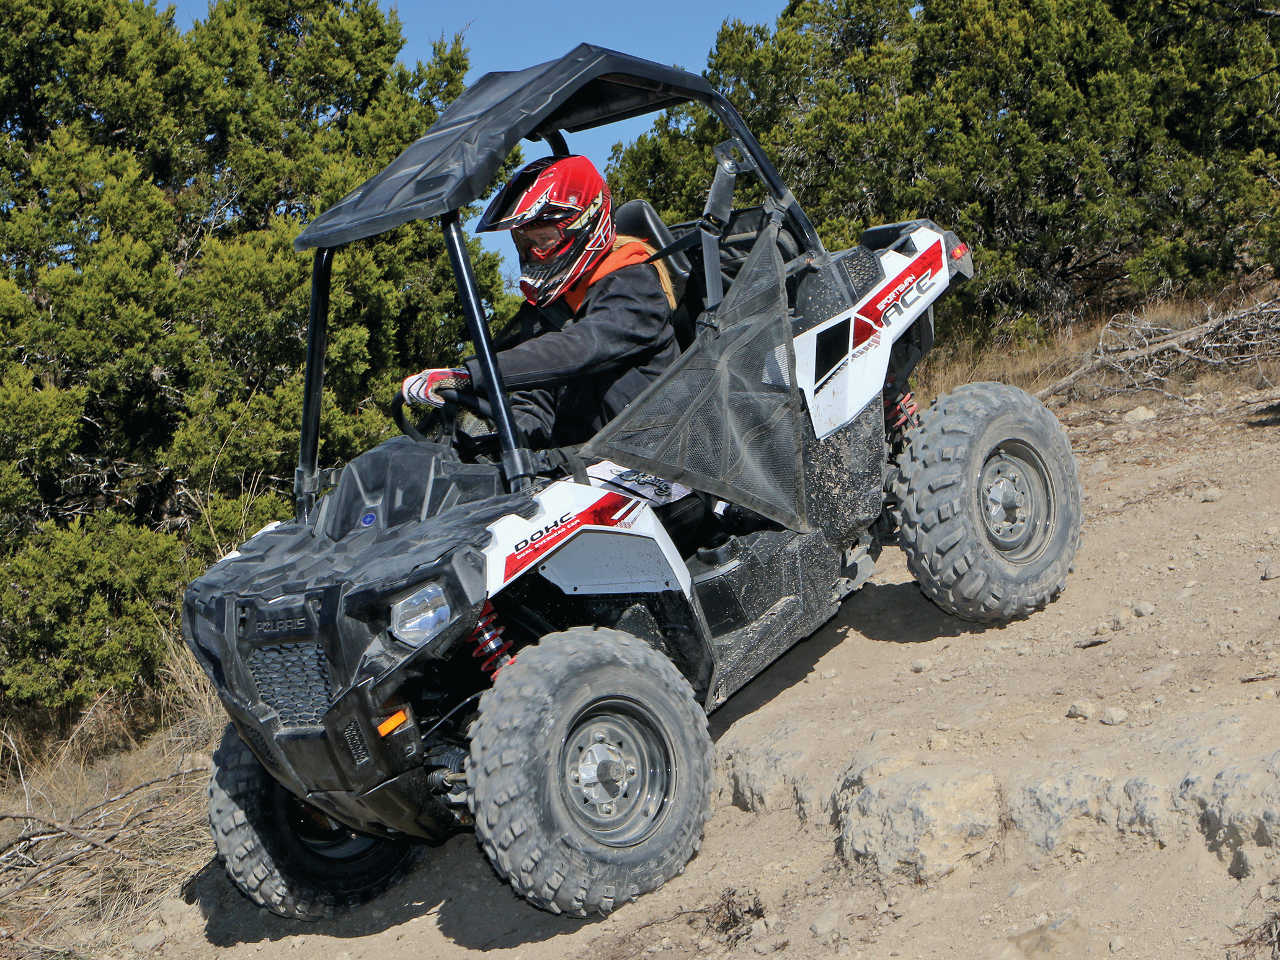 First Ride Polar Opposites Atv Illustrated Ace Wiring Diagram Polaris Sportsman 2015polarissportsman Aceleftwhiteridingdown